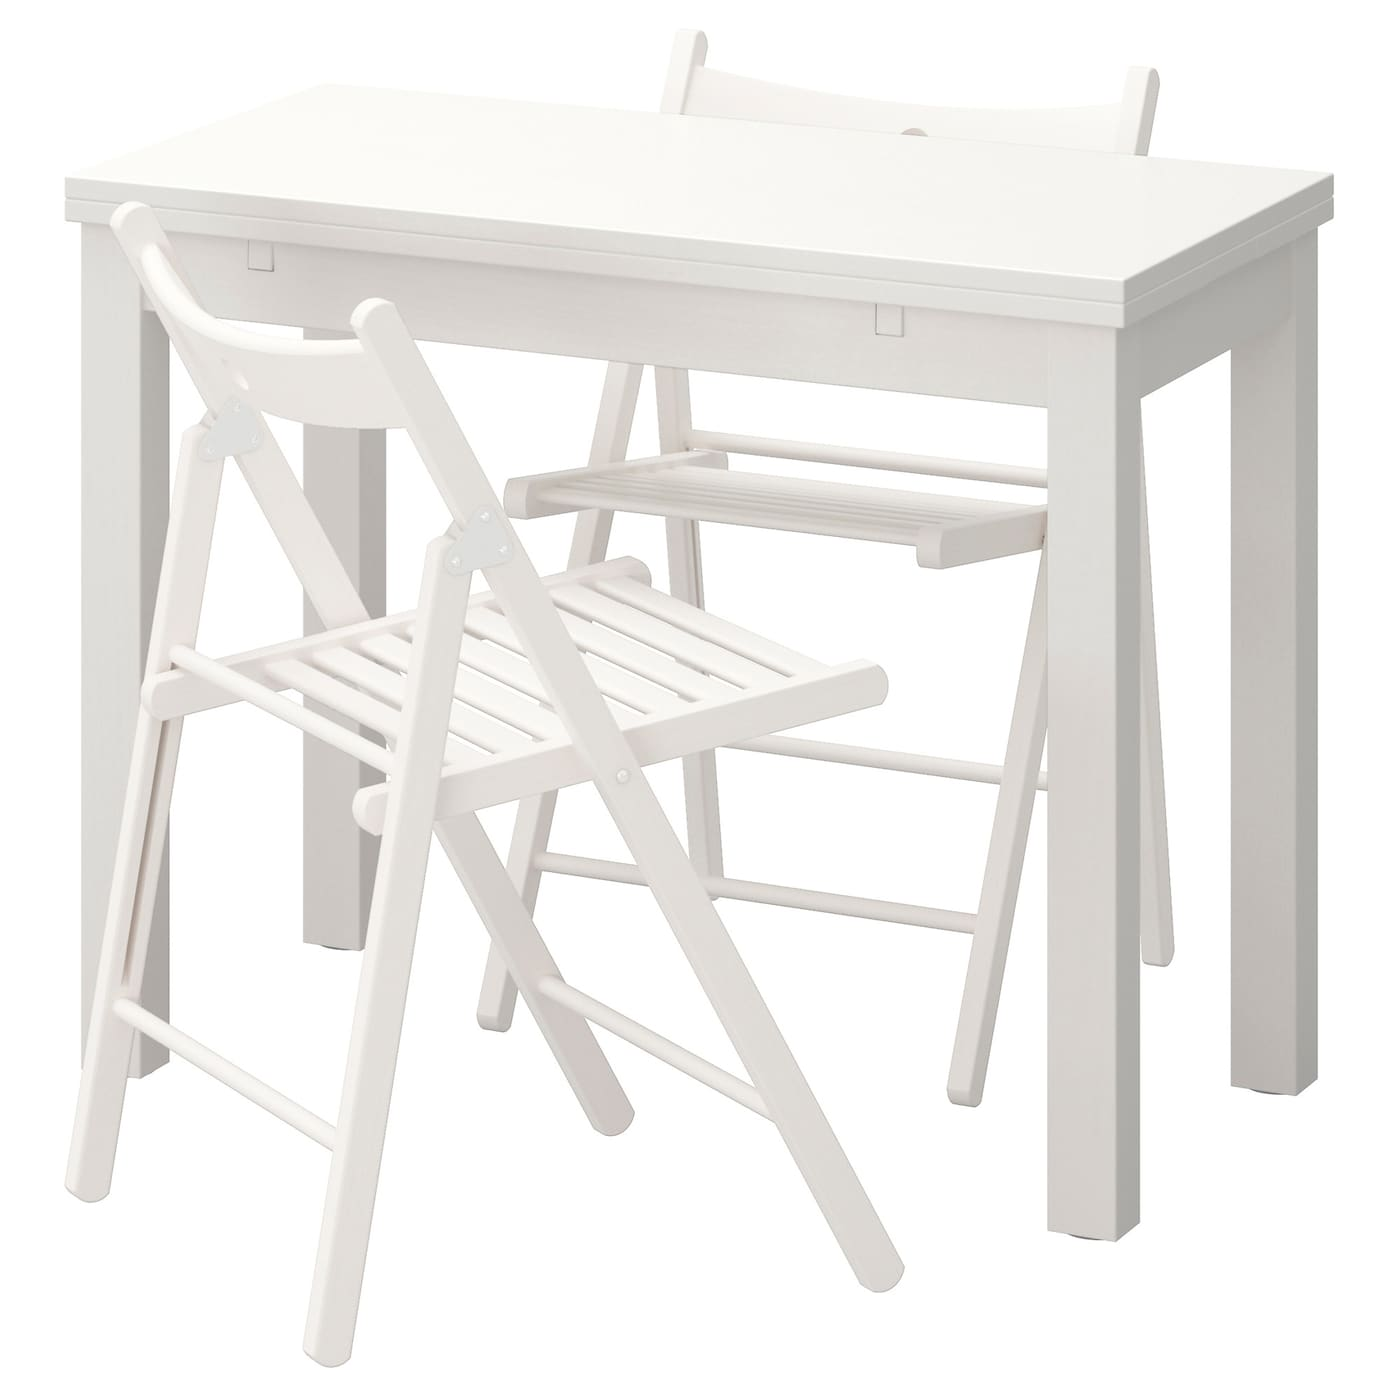 IKEA TERJE/BJURSTA table and 2 chairs Ideal as an end table against a wall.